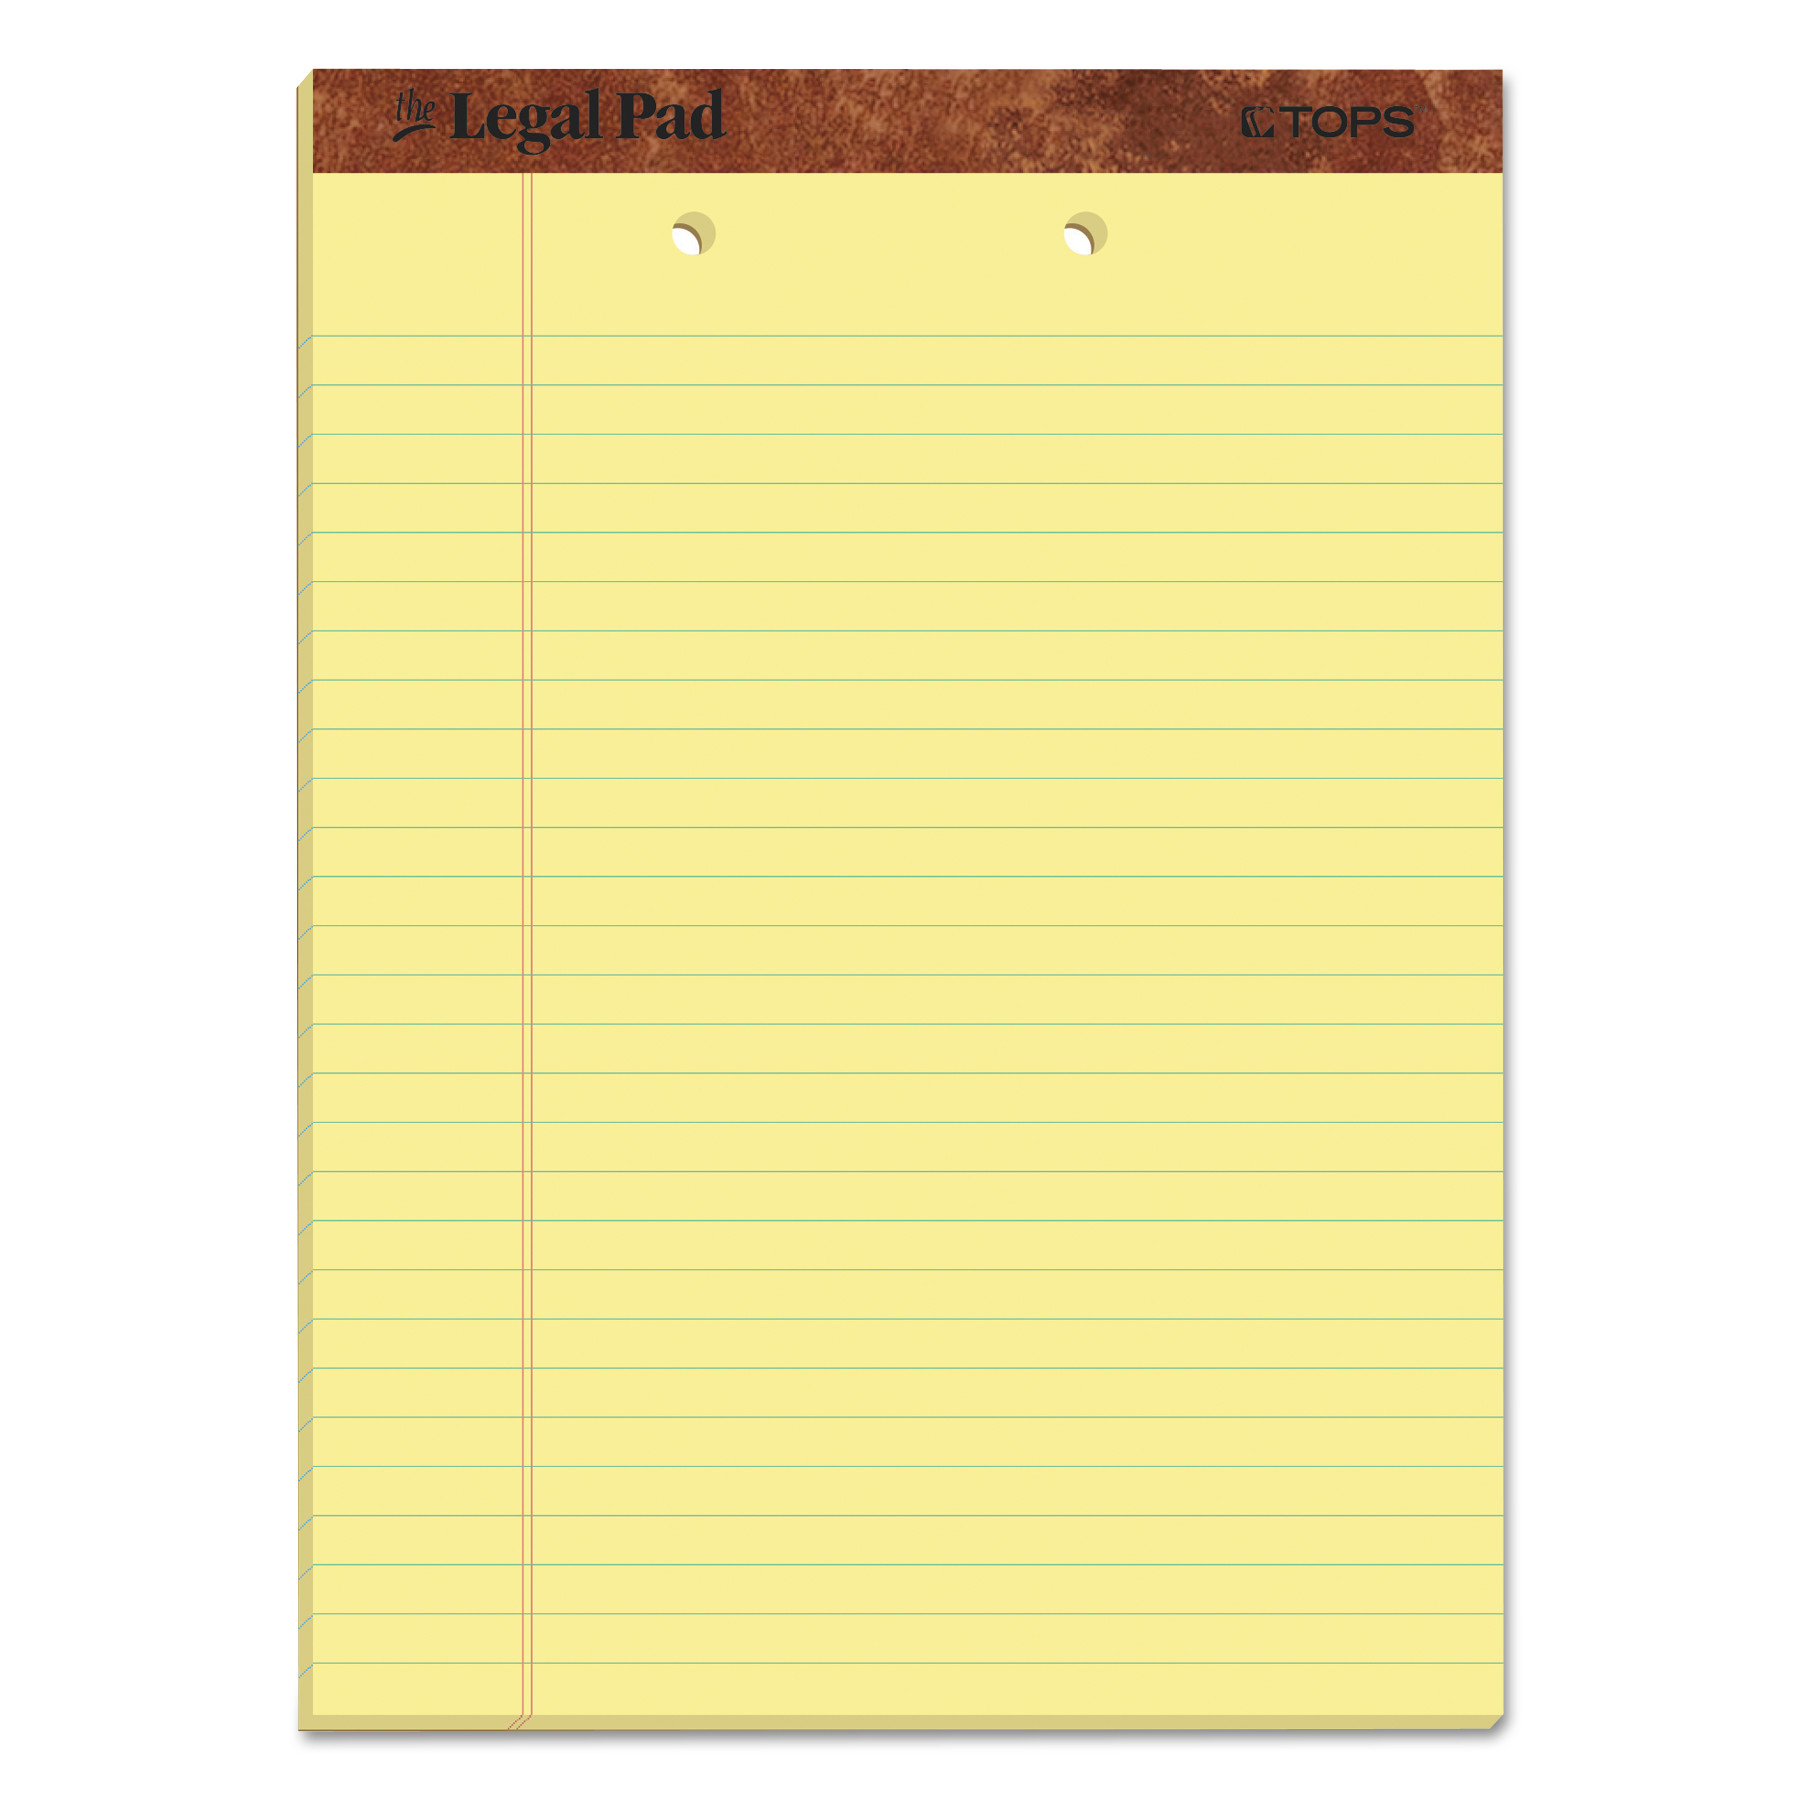 """""""The Legal Pad"""" Ruled Pads, Wide/Legal Rule, 8.5 x 11.75, Canary, 50 Sheets, Dozen TOP7531"""